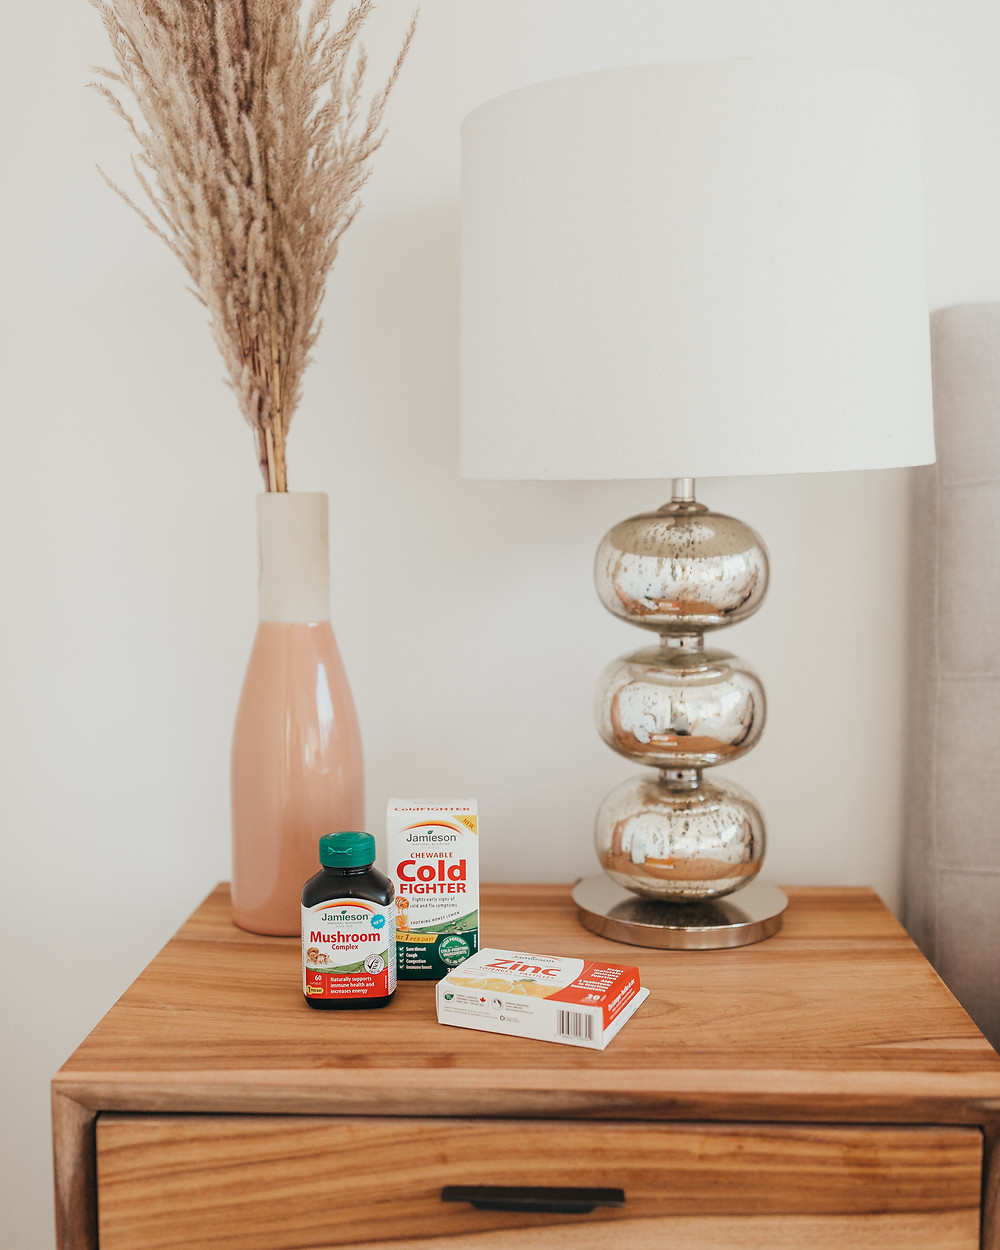 A bedroom bedside table with some health supplements sitting on top.